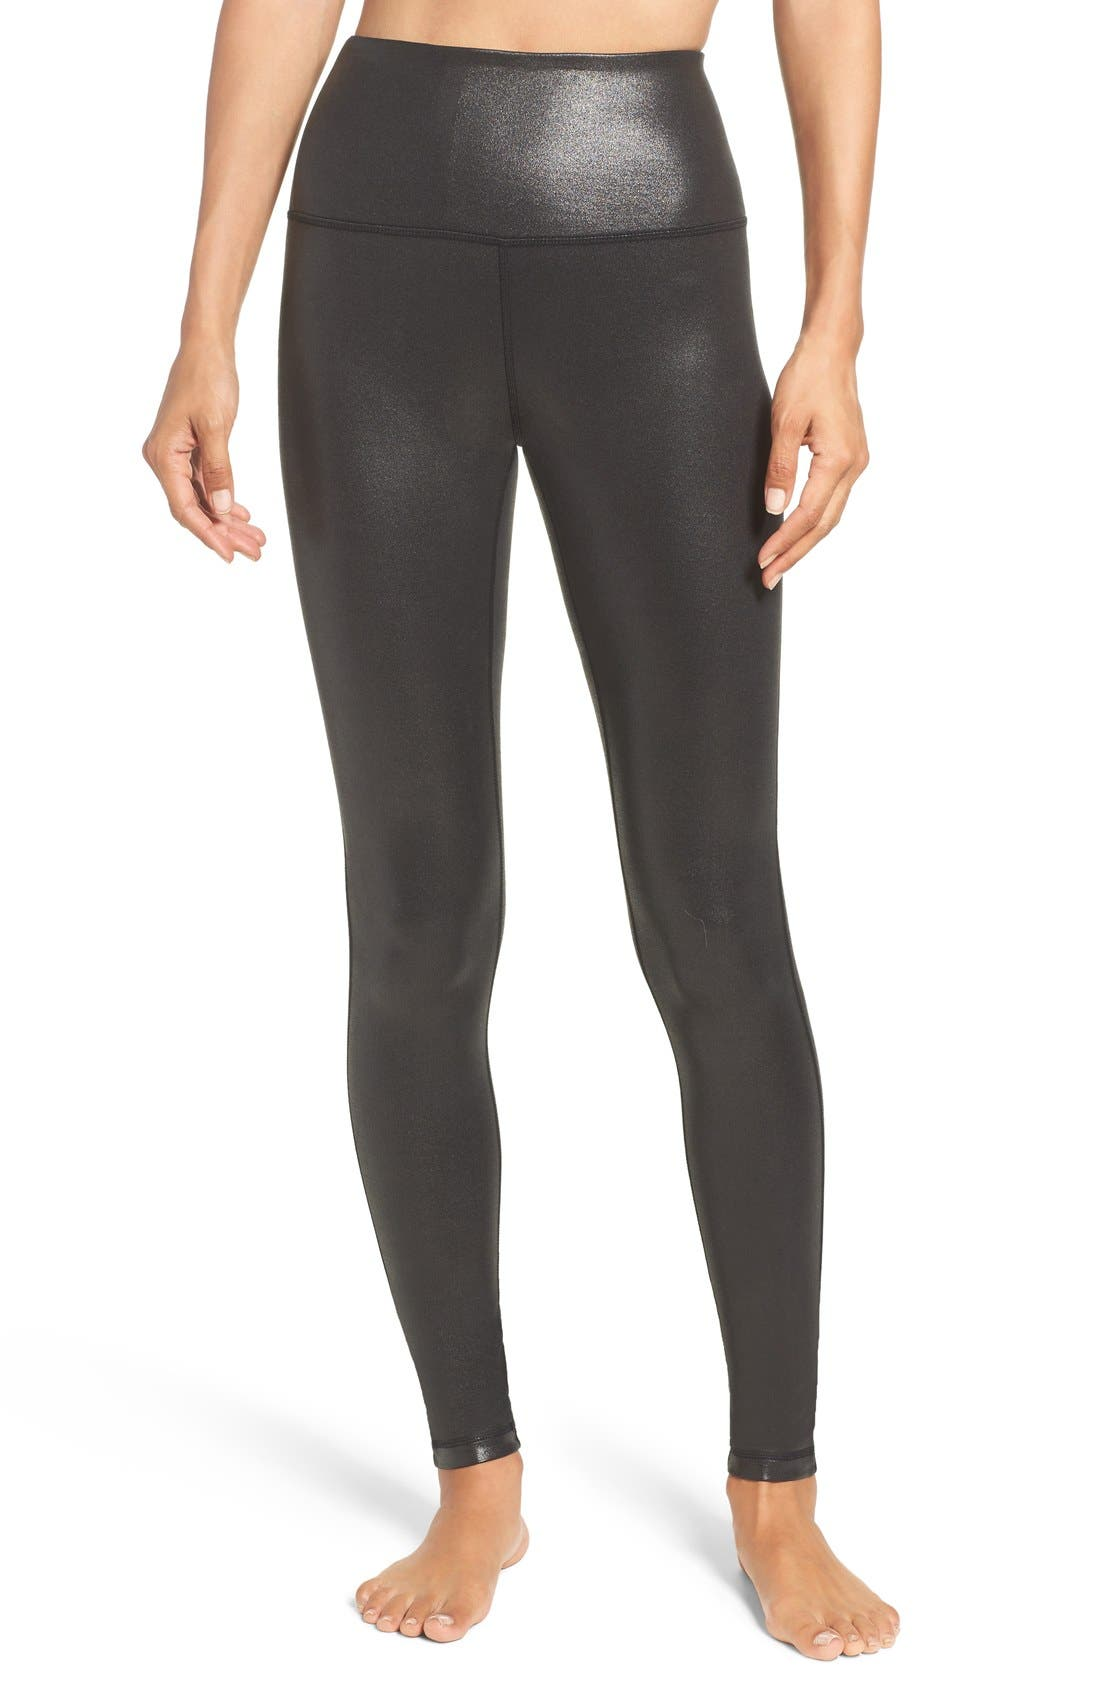 Alternate Image 1 Selected - Zella Live-In High Waist Leggings (Online Only)